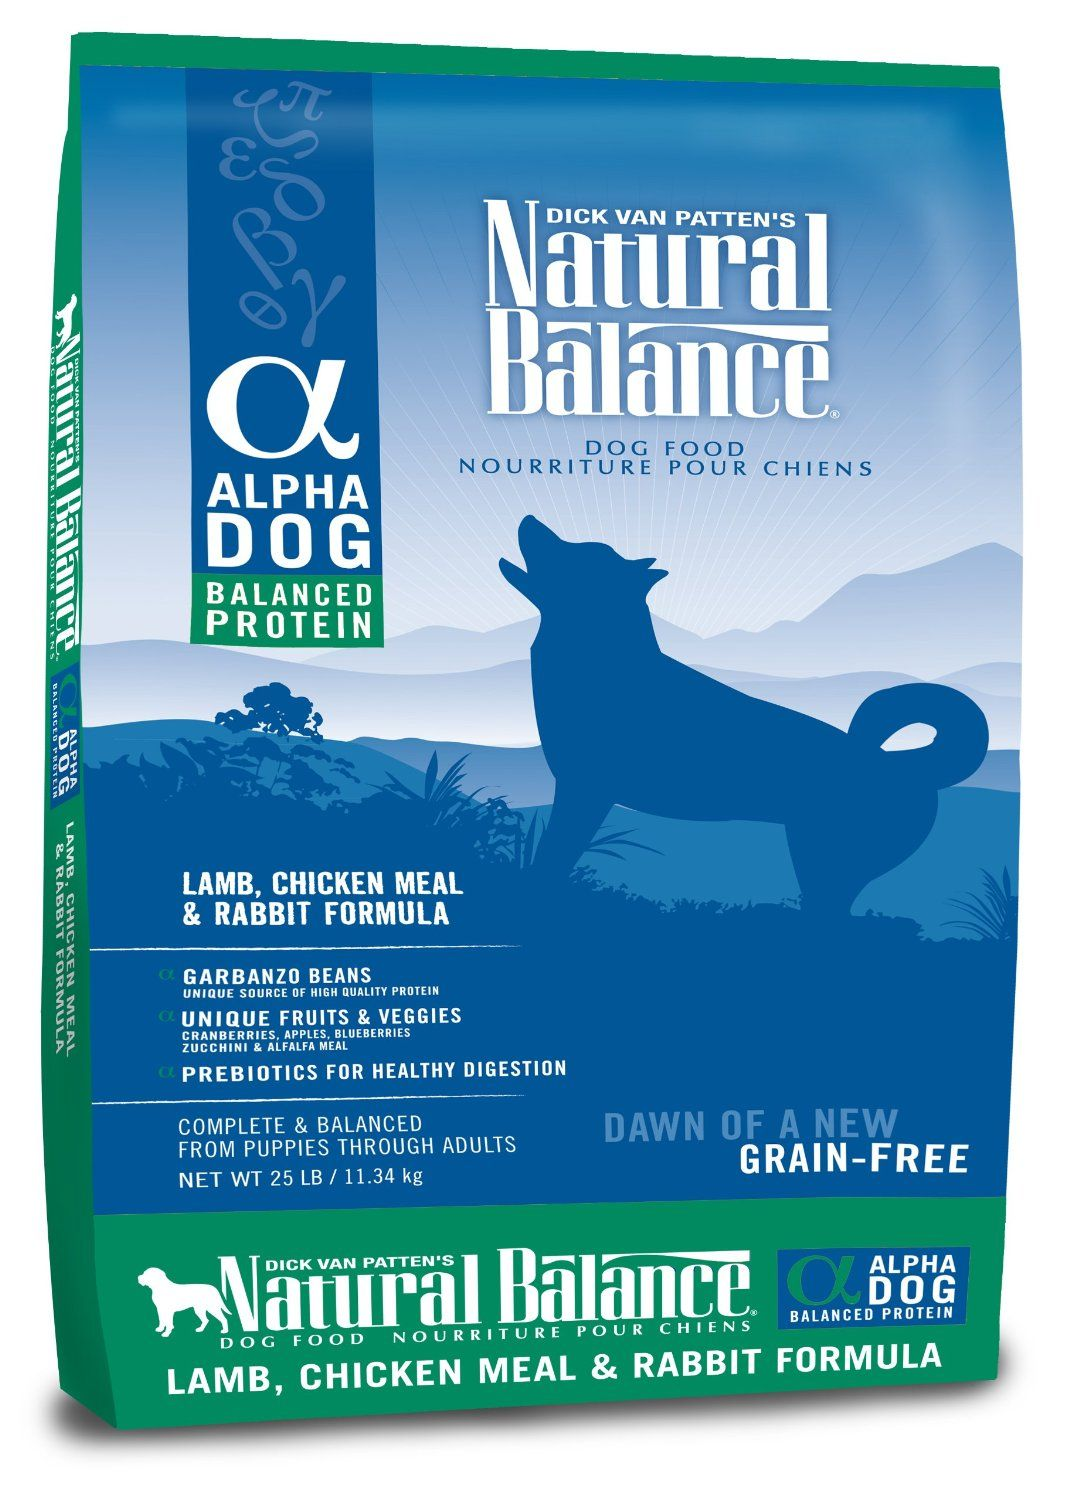 Natural Balance Alpha Grain Free Lamb Chicken Meal And Rabbit Formula For Dogs 25 Pound Bag Dry Pet Food Pet Supplies Amazon Com Hunde Futter